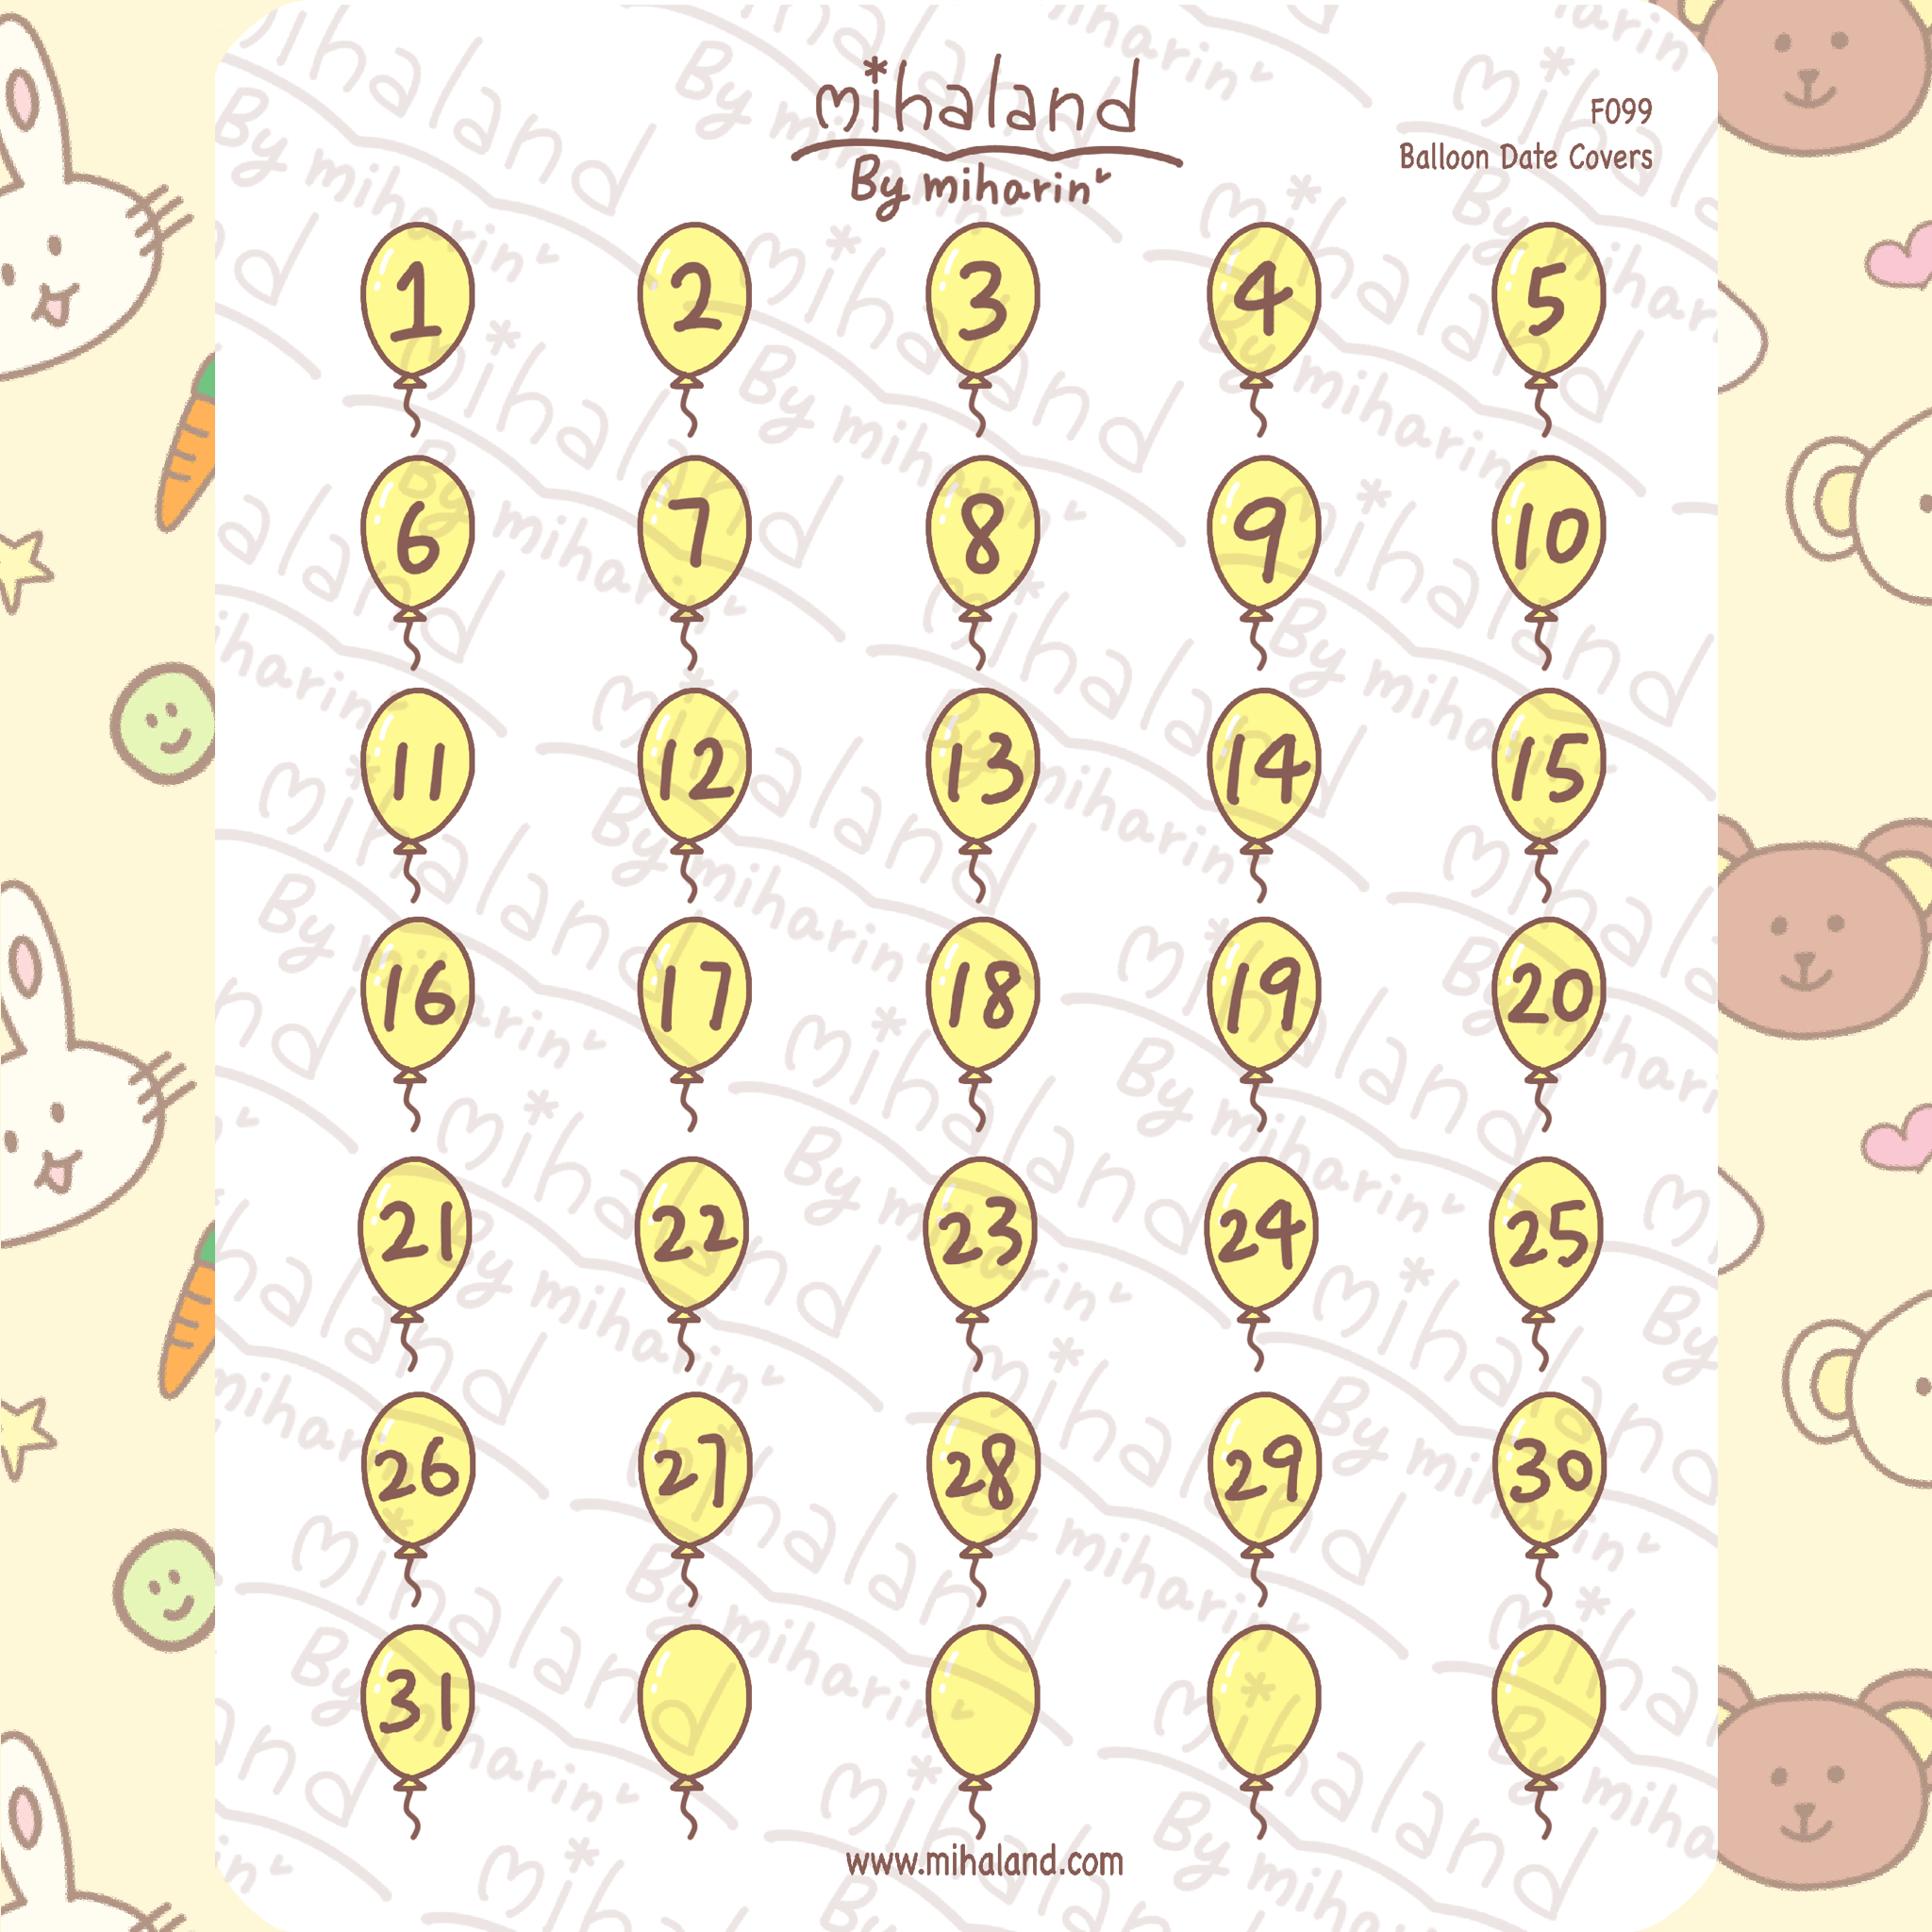 Balloon Date Covers Planner Stickers (F099)